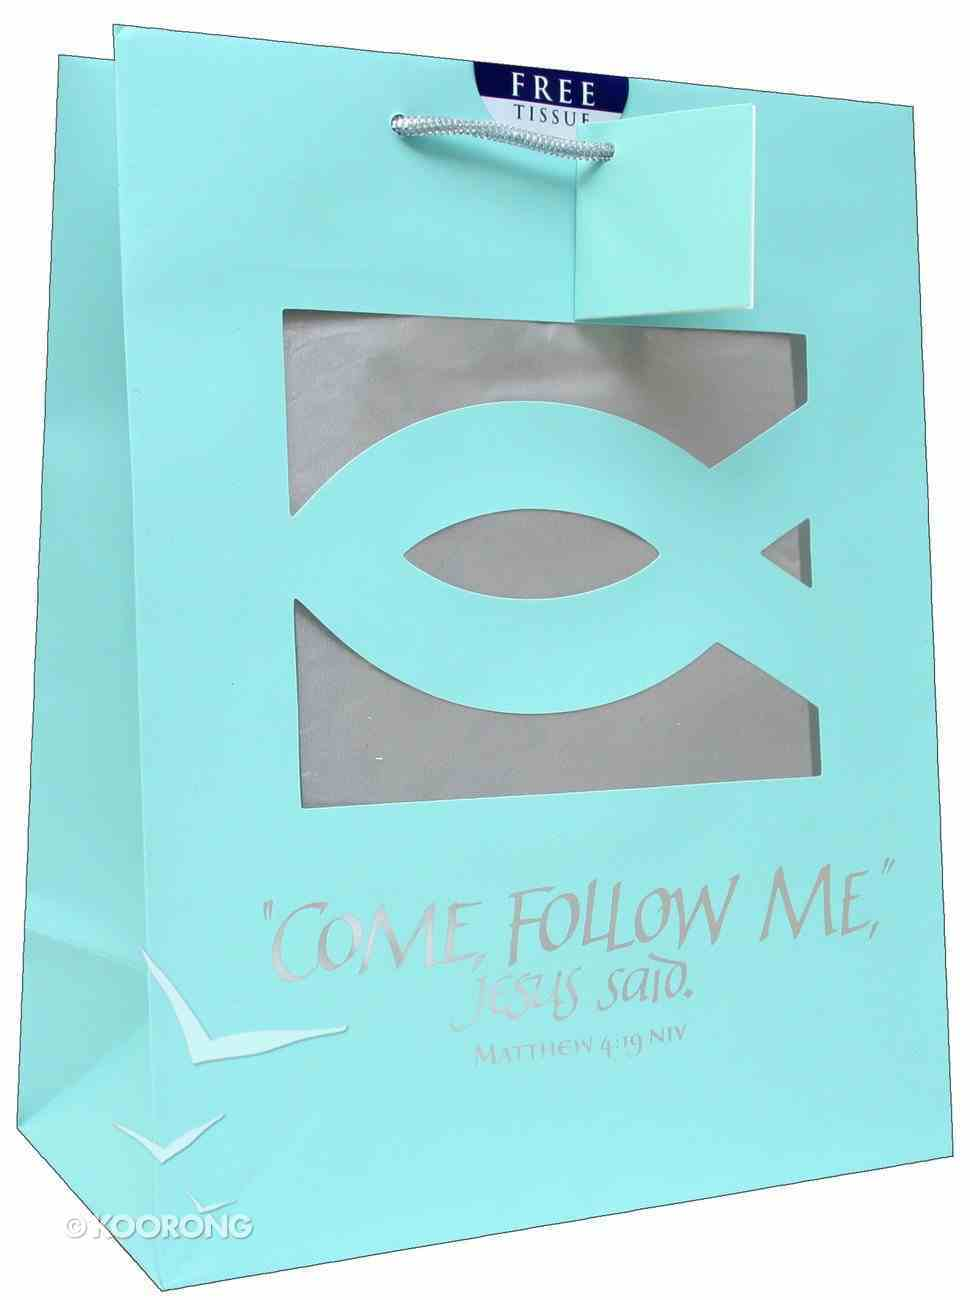 Gift Bag Large: Come Follow Me (Incl Tissue) Stationery